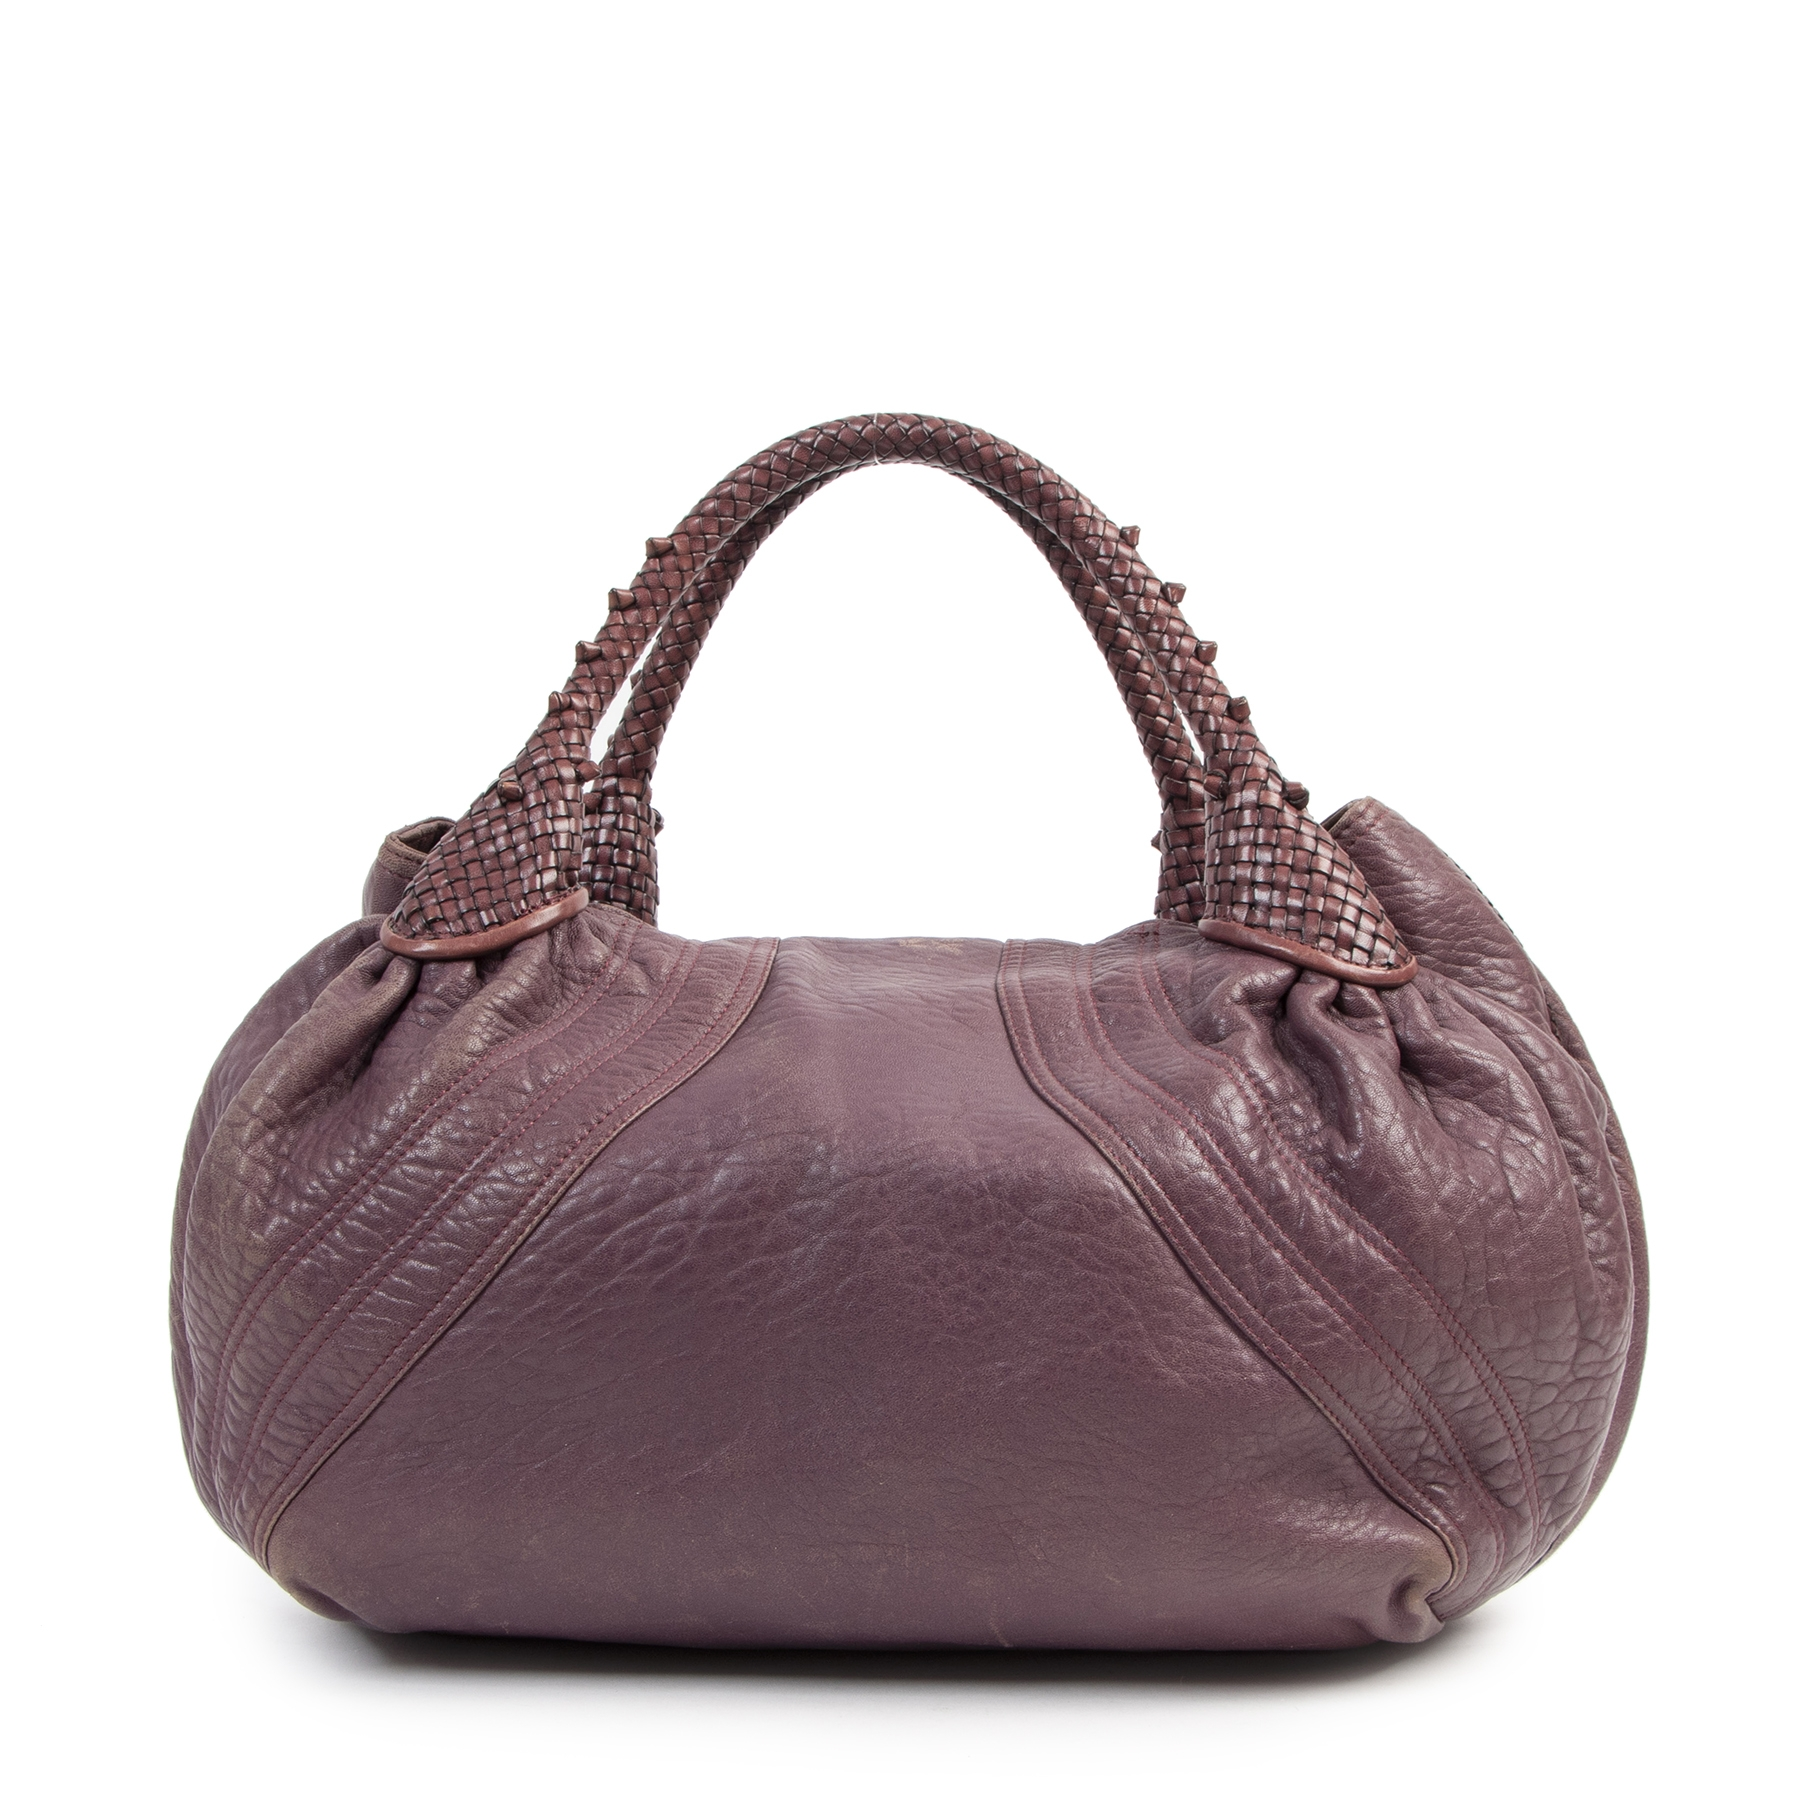 Authentic secondhand Fendi Purple Leather Spy Bag designer bags fashion luxury vintage webshop safe secure online shopping designer high end brands